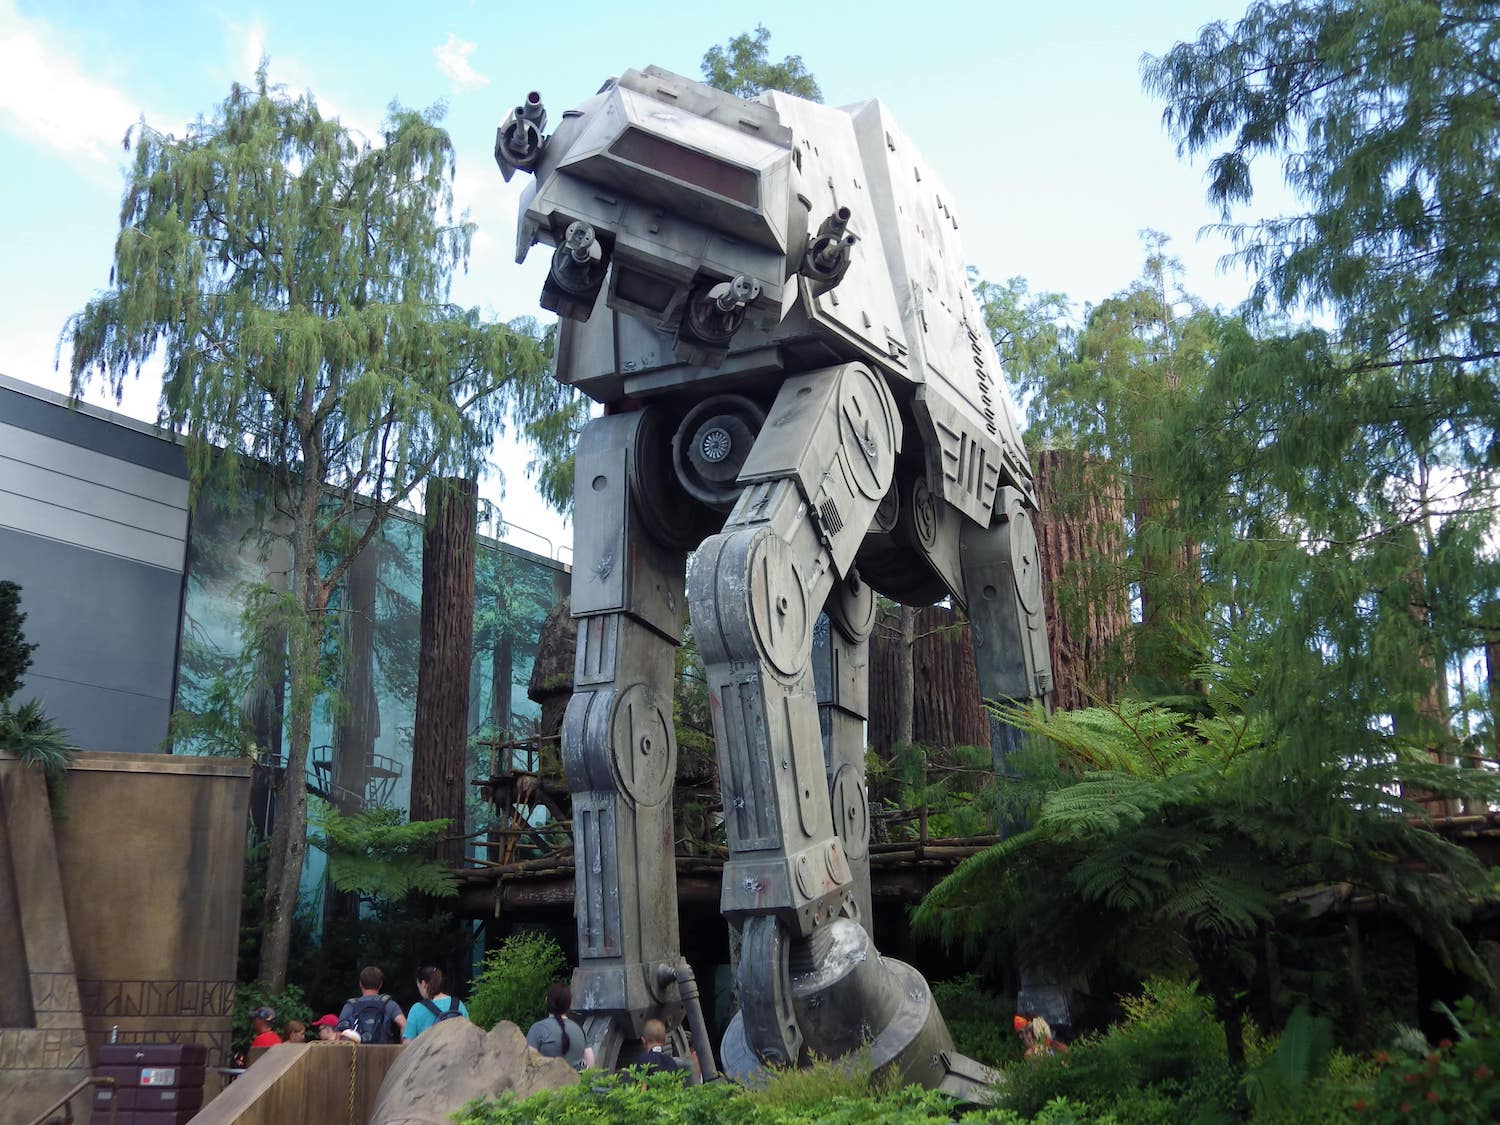 003-WDW-Star-Tours-AT-AT-Walker-3x4-by-Joshua-Meyer.jpg